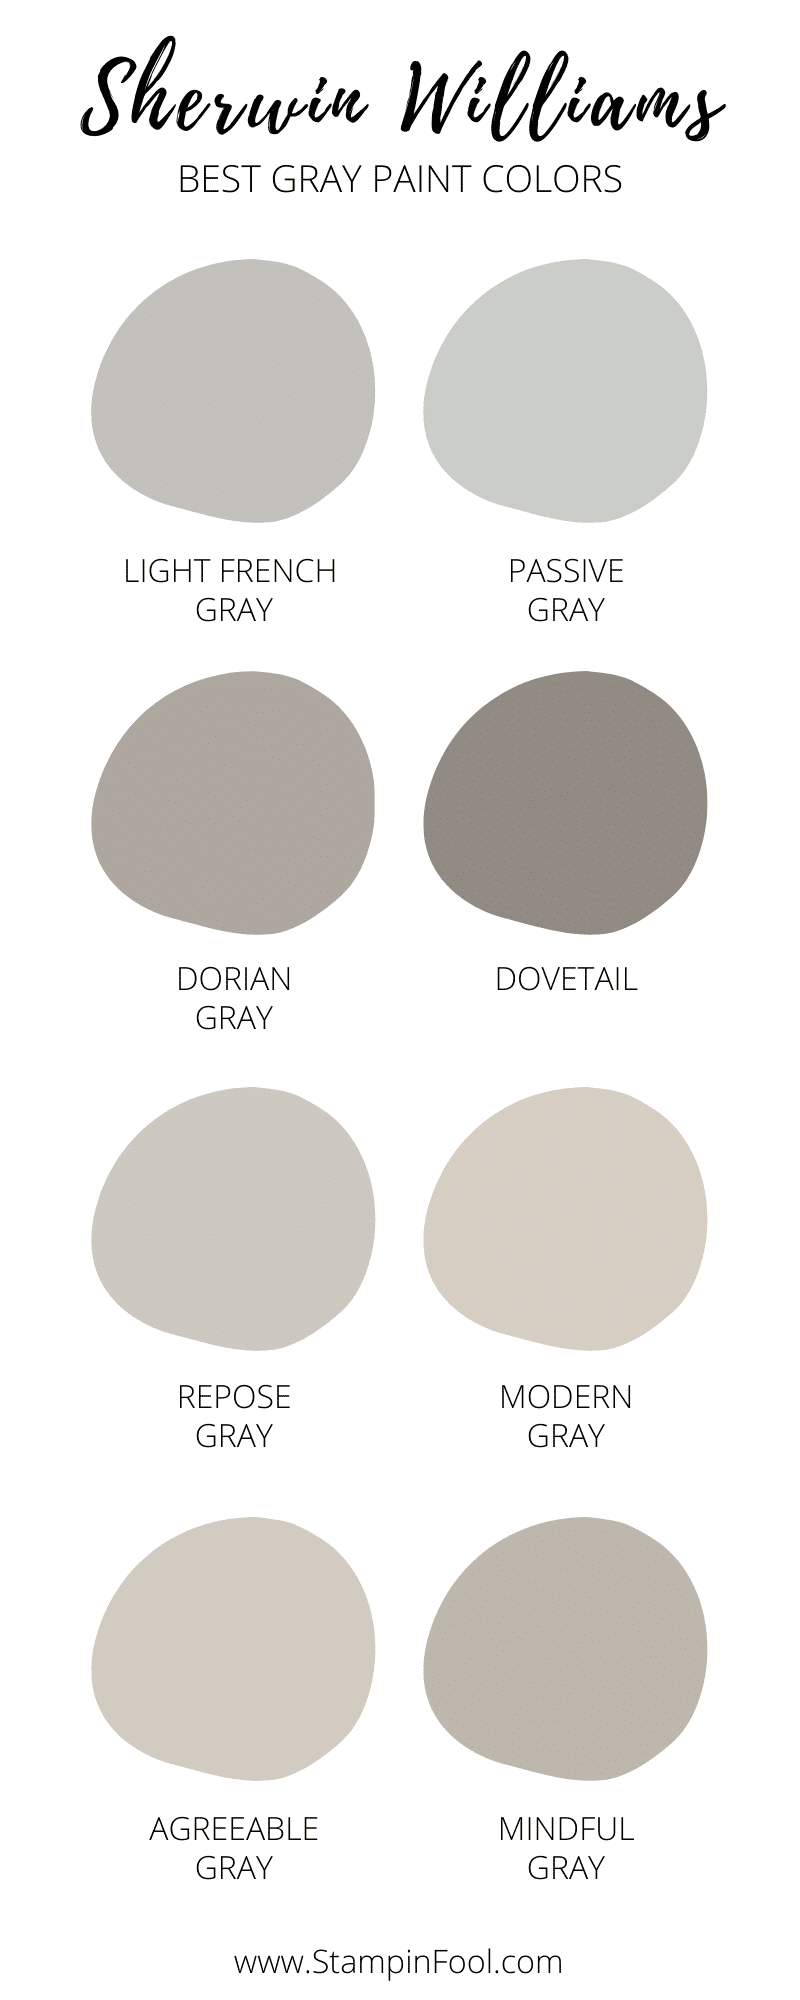 Sherwin Williams Best Gray Paint Colors 2021